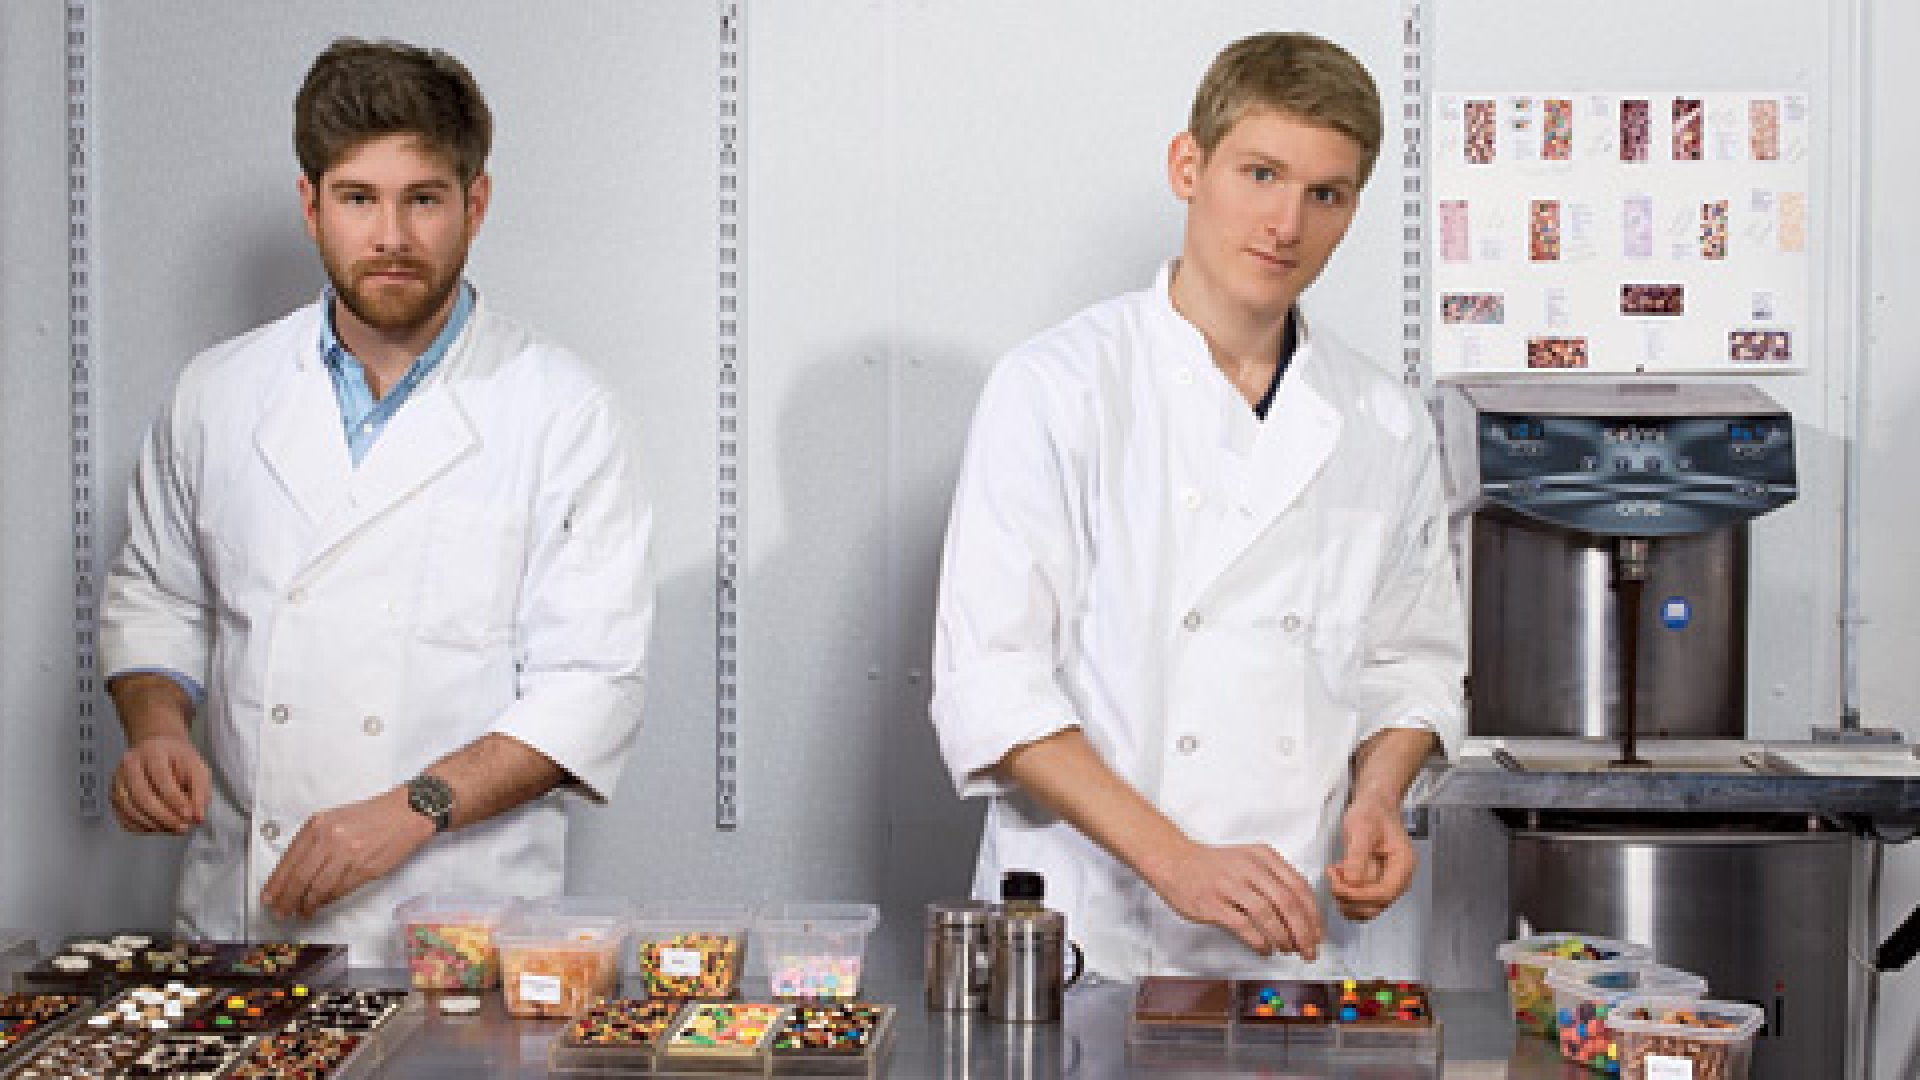 <b>The Two Chocolatiers </b>Their start-up got good press, but Eric Heinbockel (left) and Fabian Kaempfer struggled with slow sales.